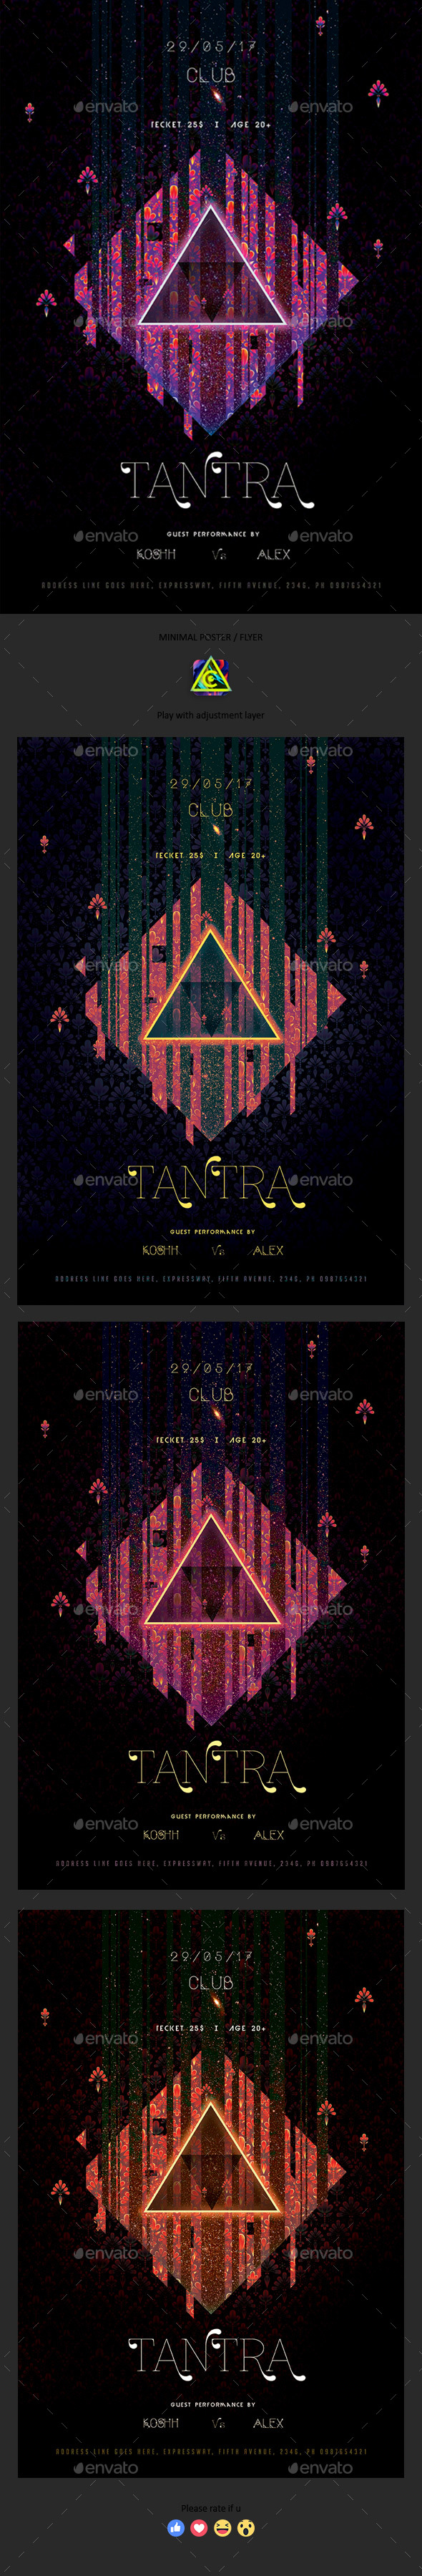 Tantra Minimal Poster / Flyer - Clubs & Parties Events